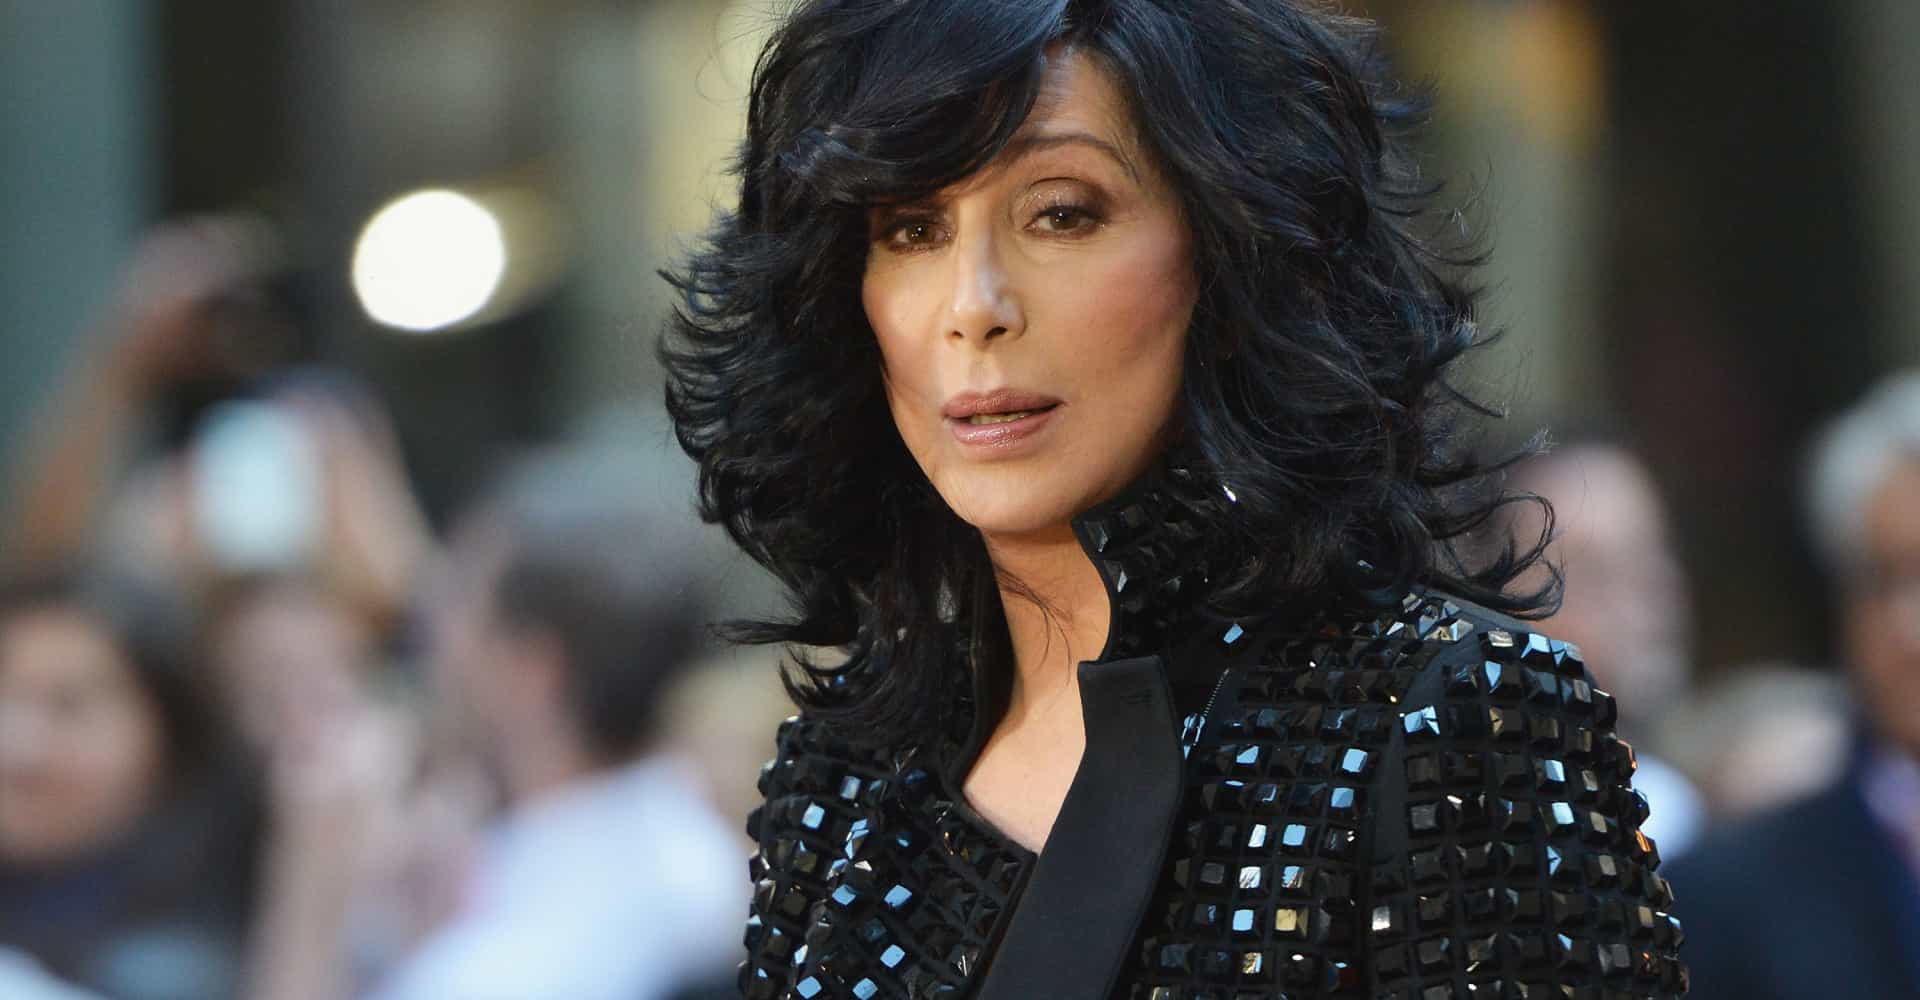 Has Cher's house been doubling as a drug den?!